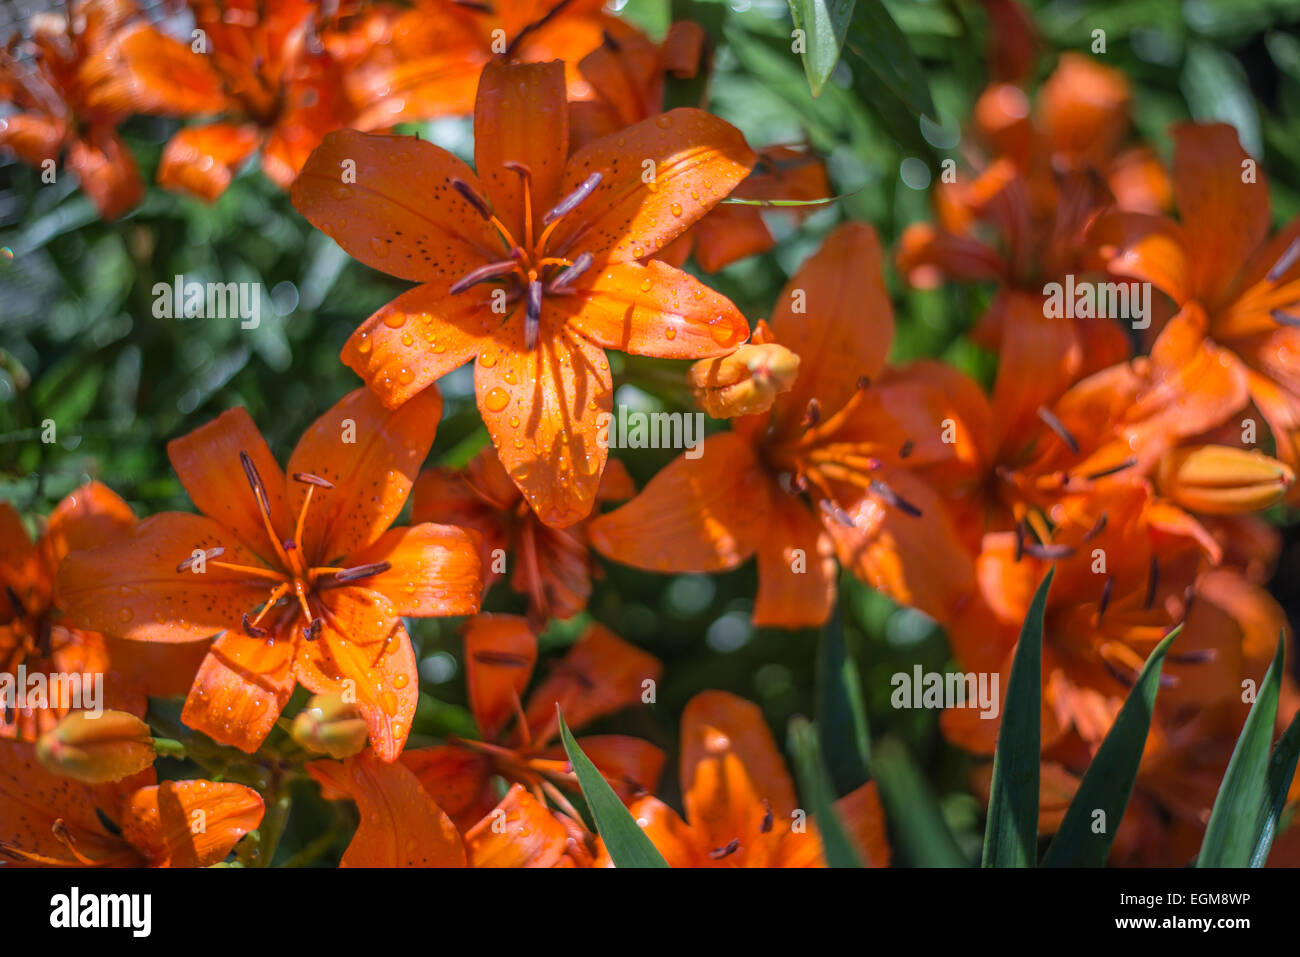 Red iris stock photos red iris stock images alamy a grouping of red iris flowers covered with dew drops stock image izmirmasajfo